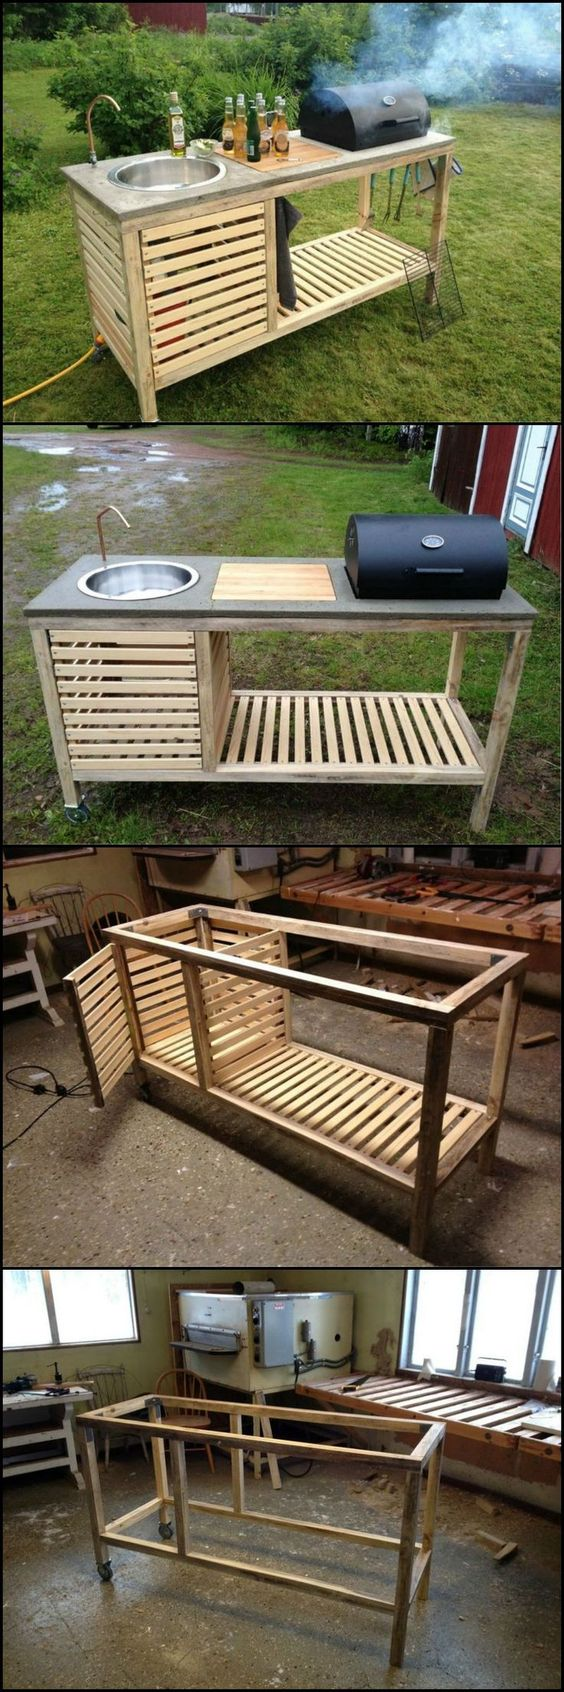 How To Build A Portable Kitchen For Your Backyard Outdoor